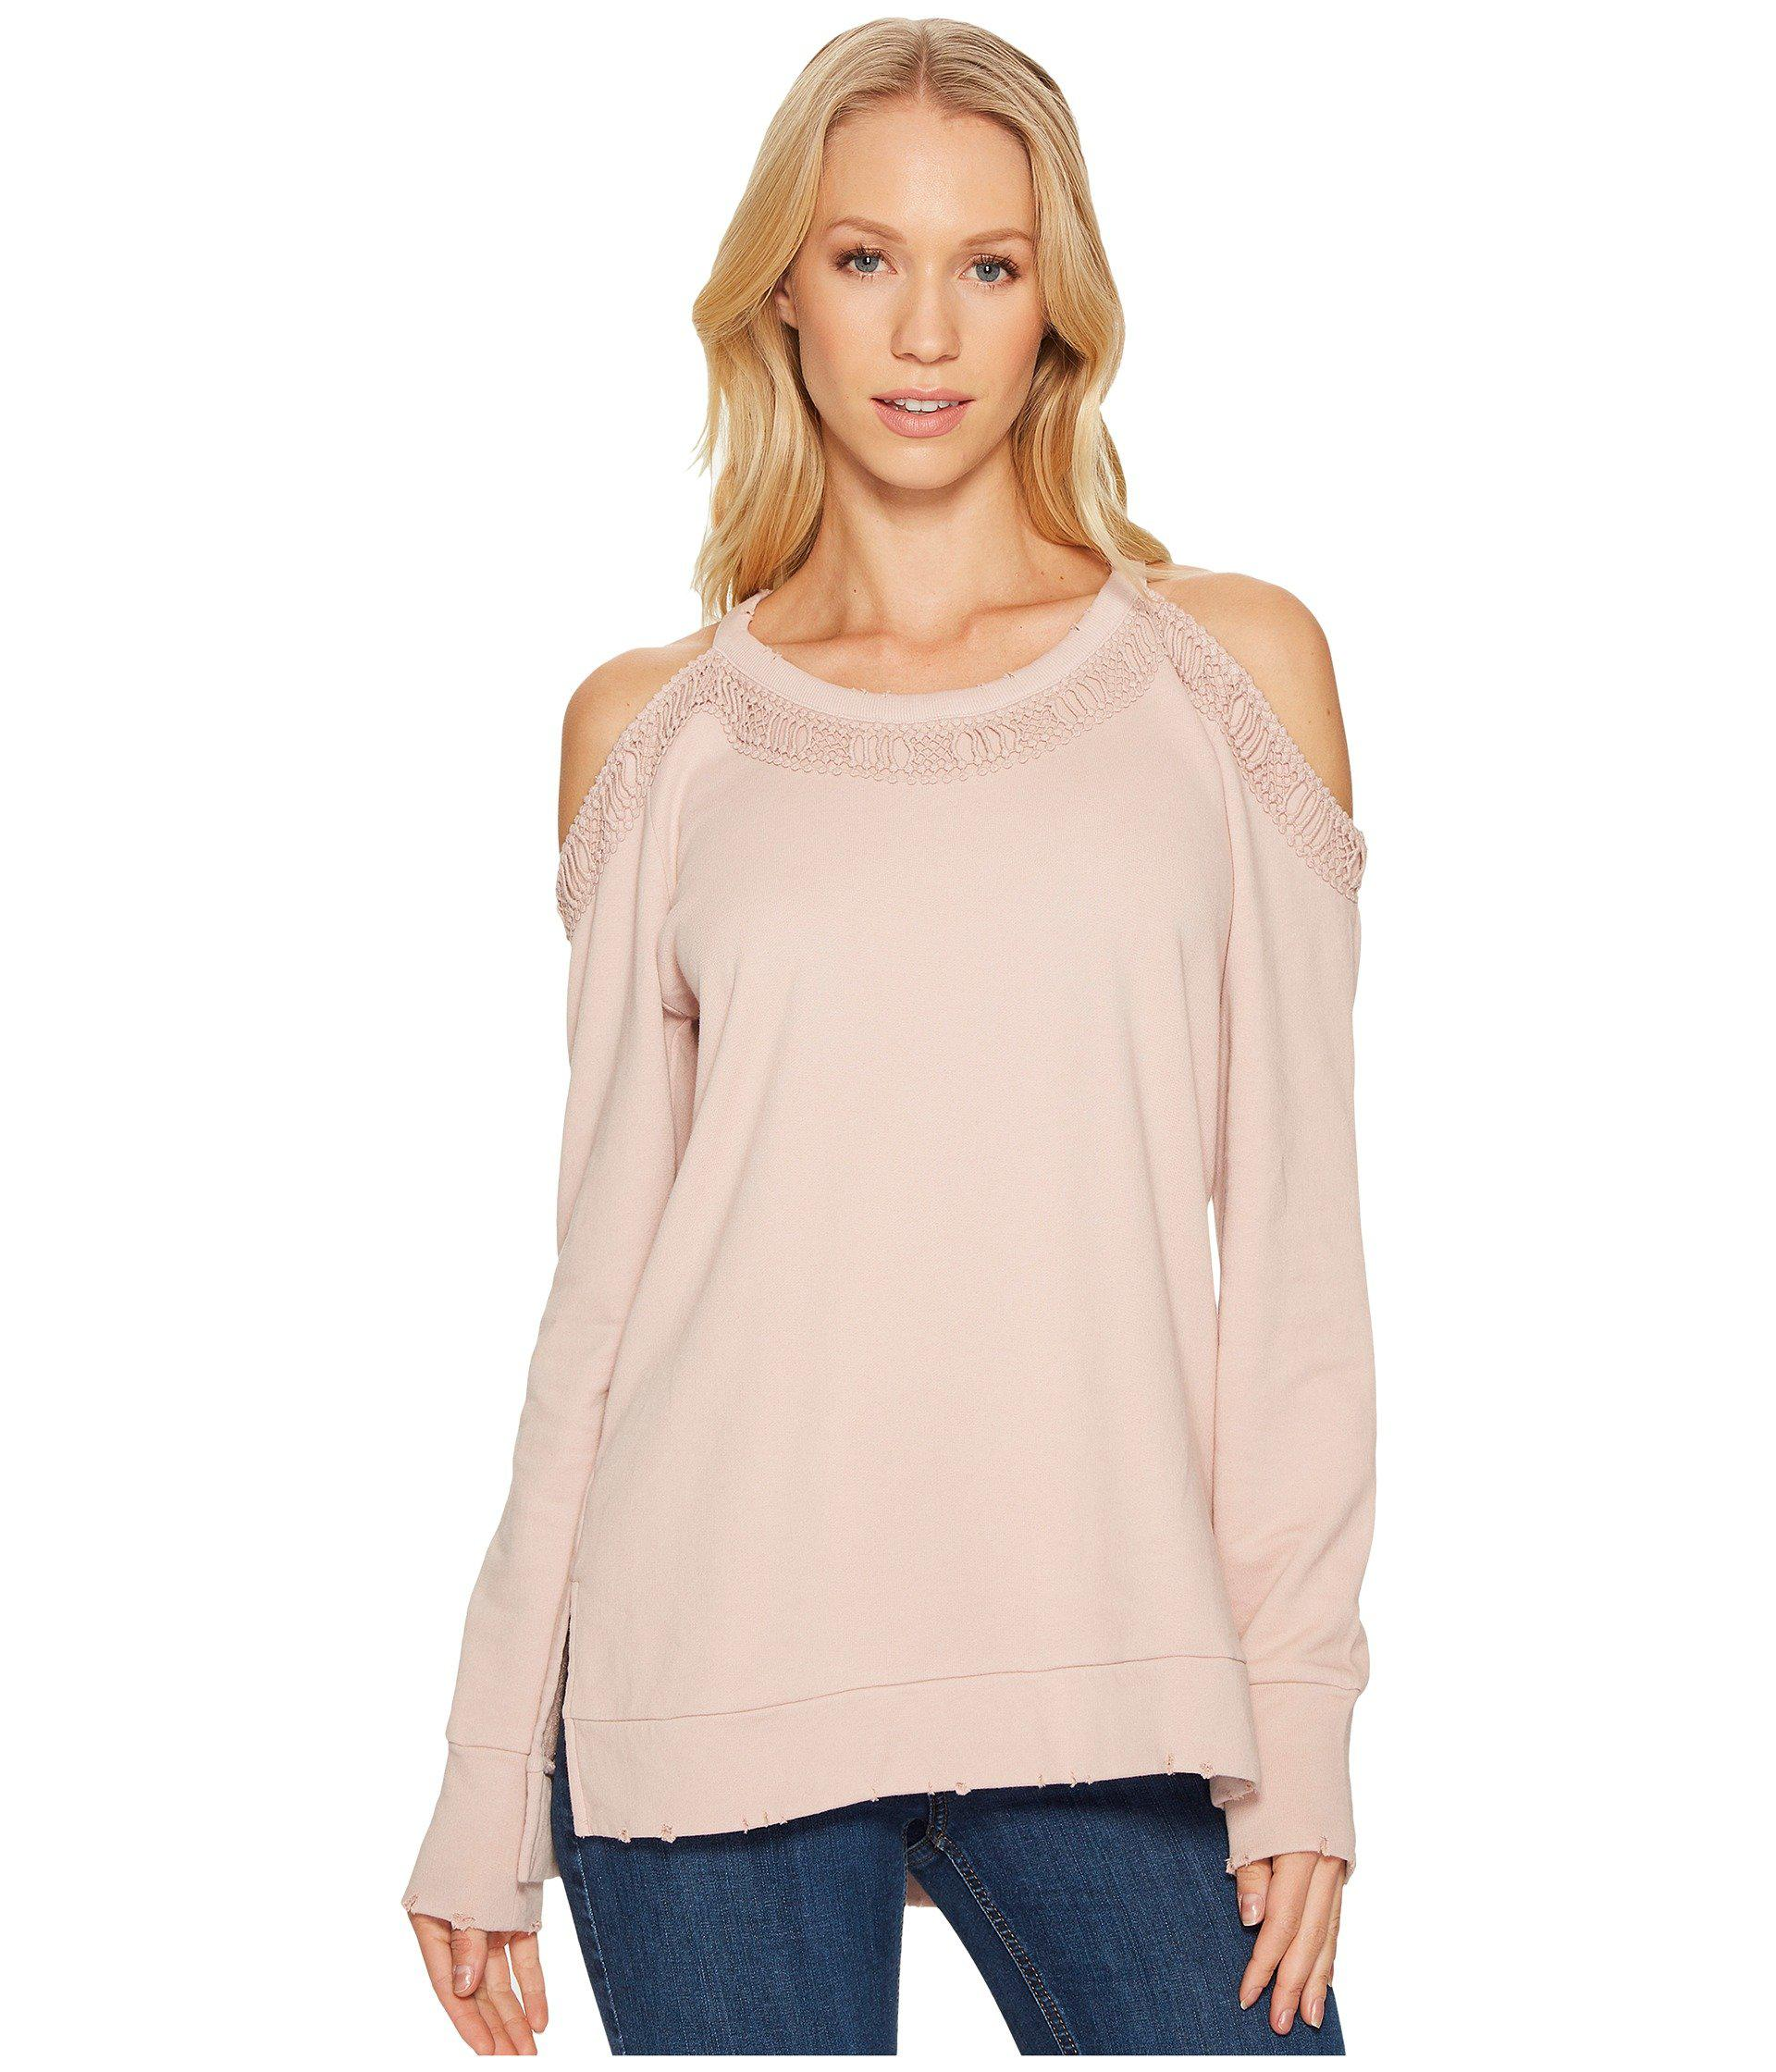 15912293e8b0b Lyst - Joe s Jeans Cold Shoulder Top in Pink - Save 36.231884057971016%